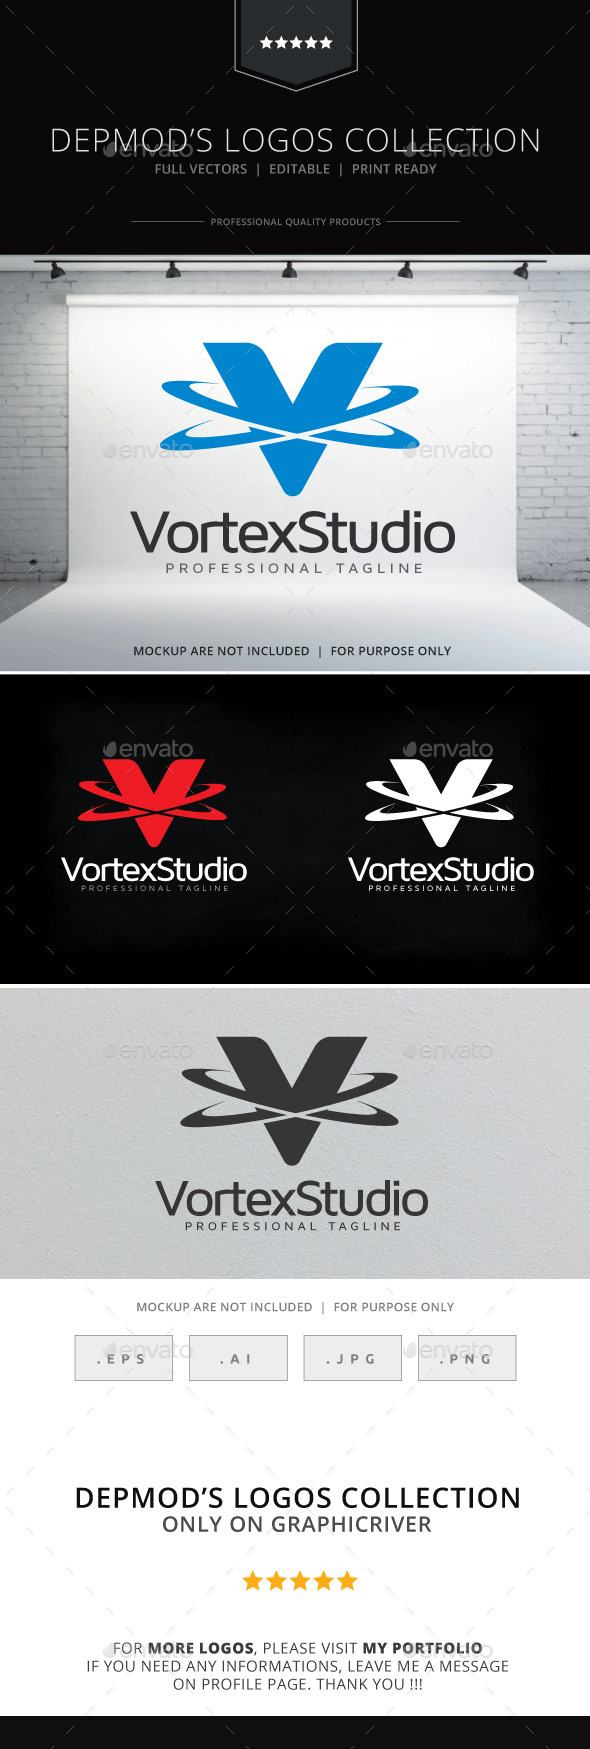 GraphicRiver Vortex Studio Logo 10067877